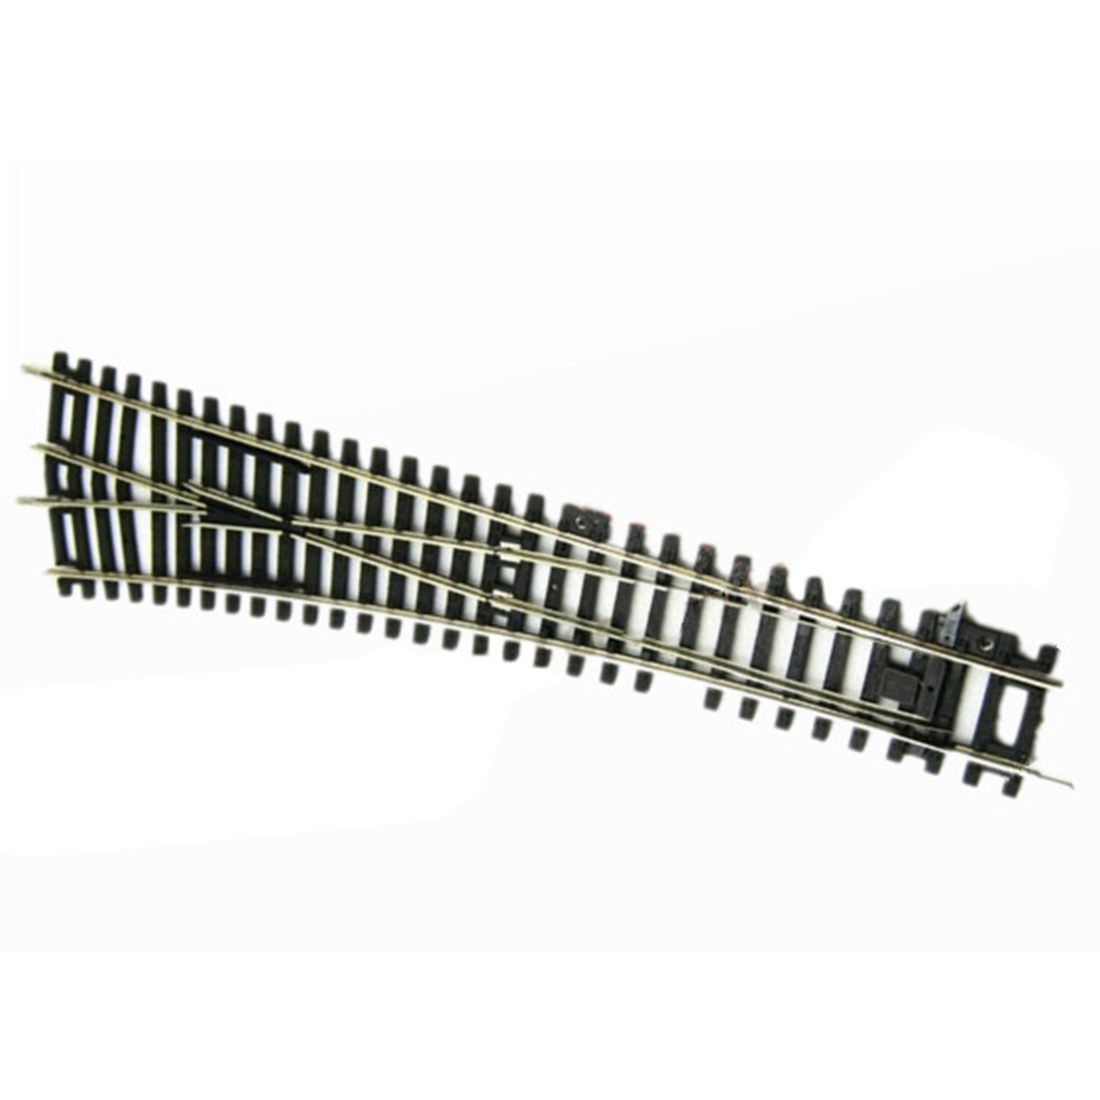 1:87 HO Scale WL Left Bifurcation Track For Train Model - Black